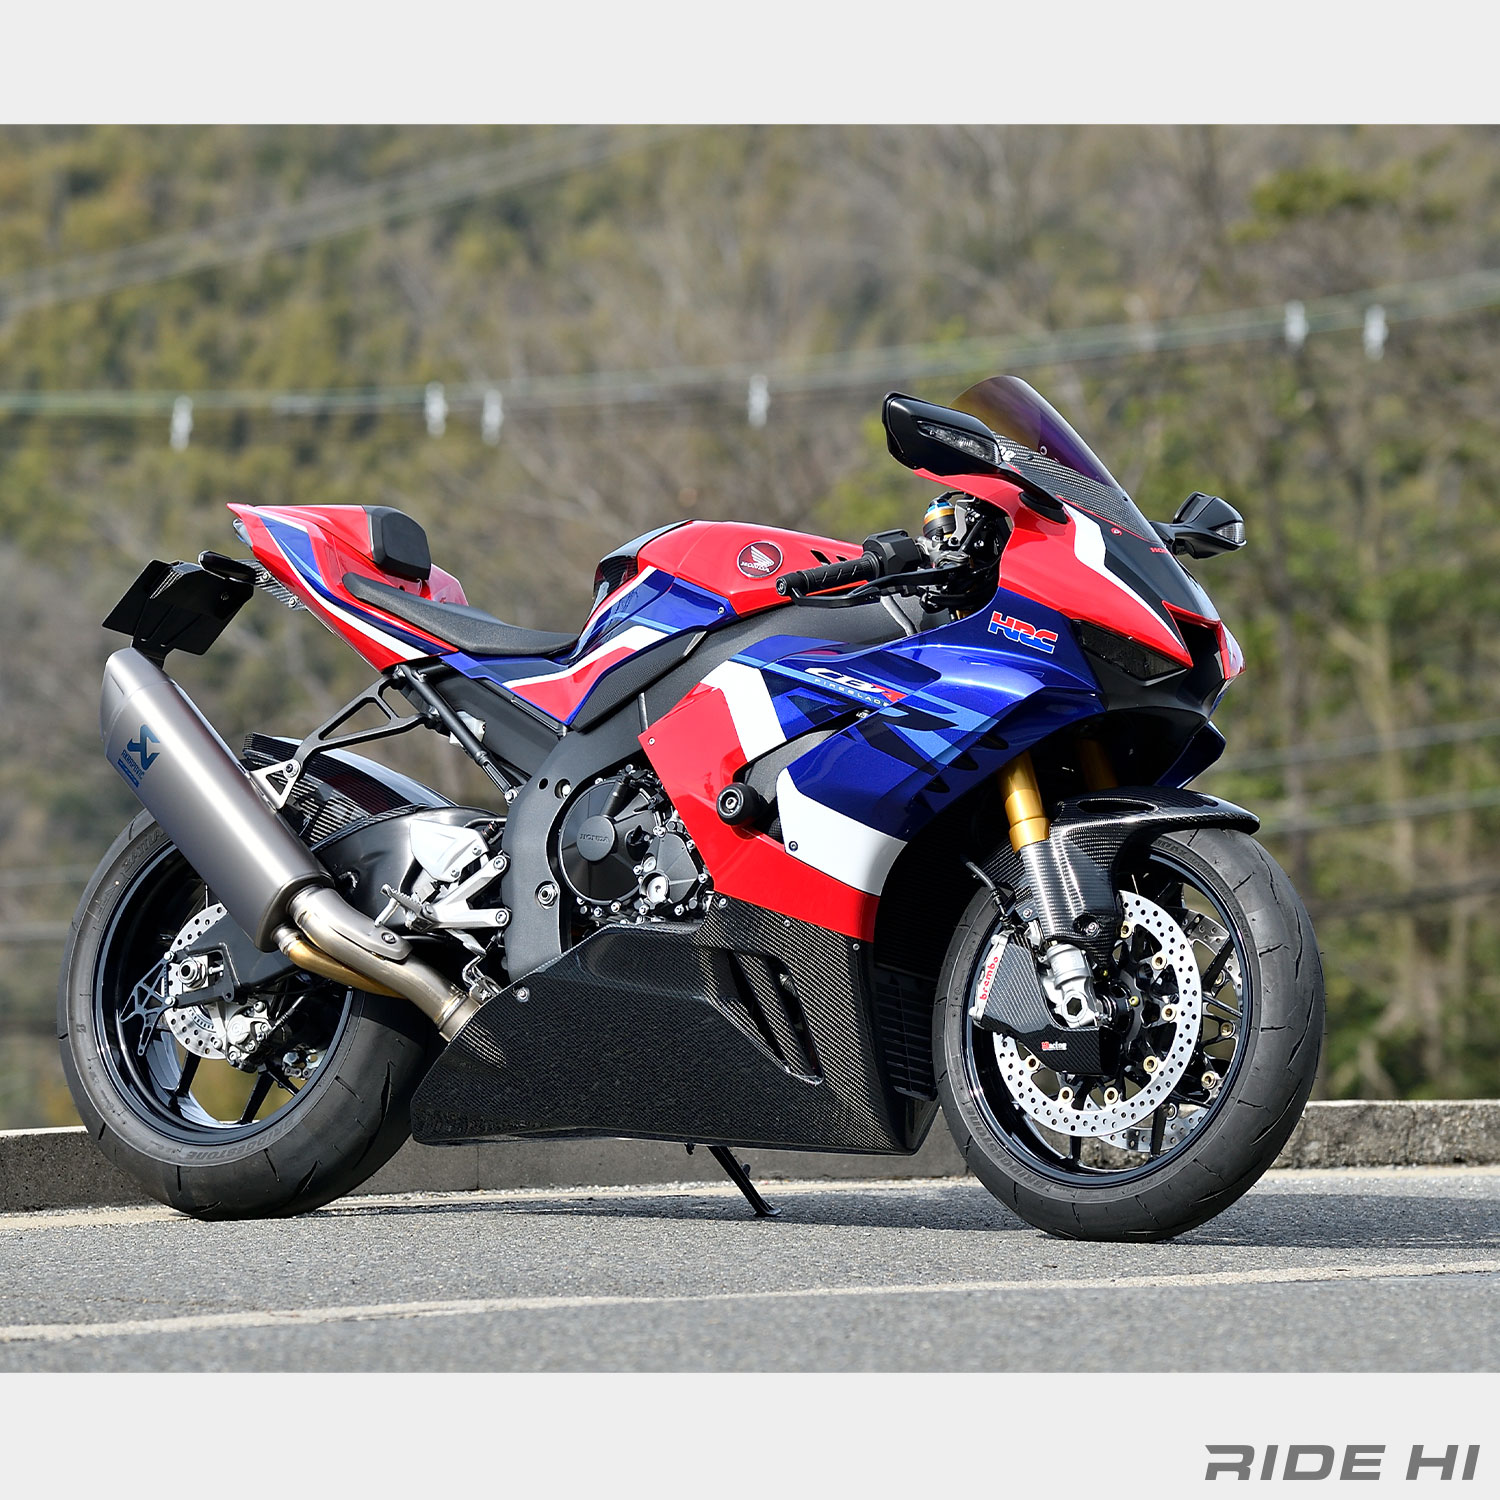 magicalracing_cbr1000rr-r_210315_main.jpg